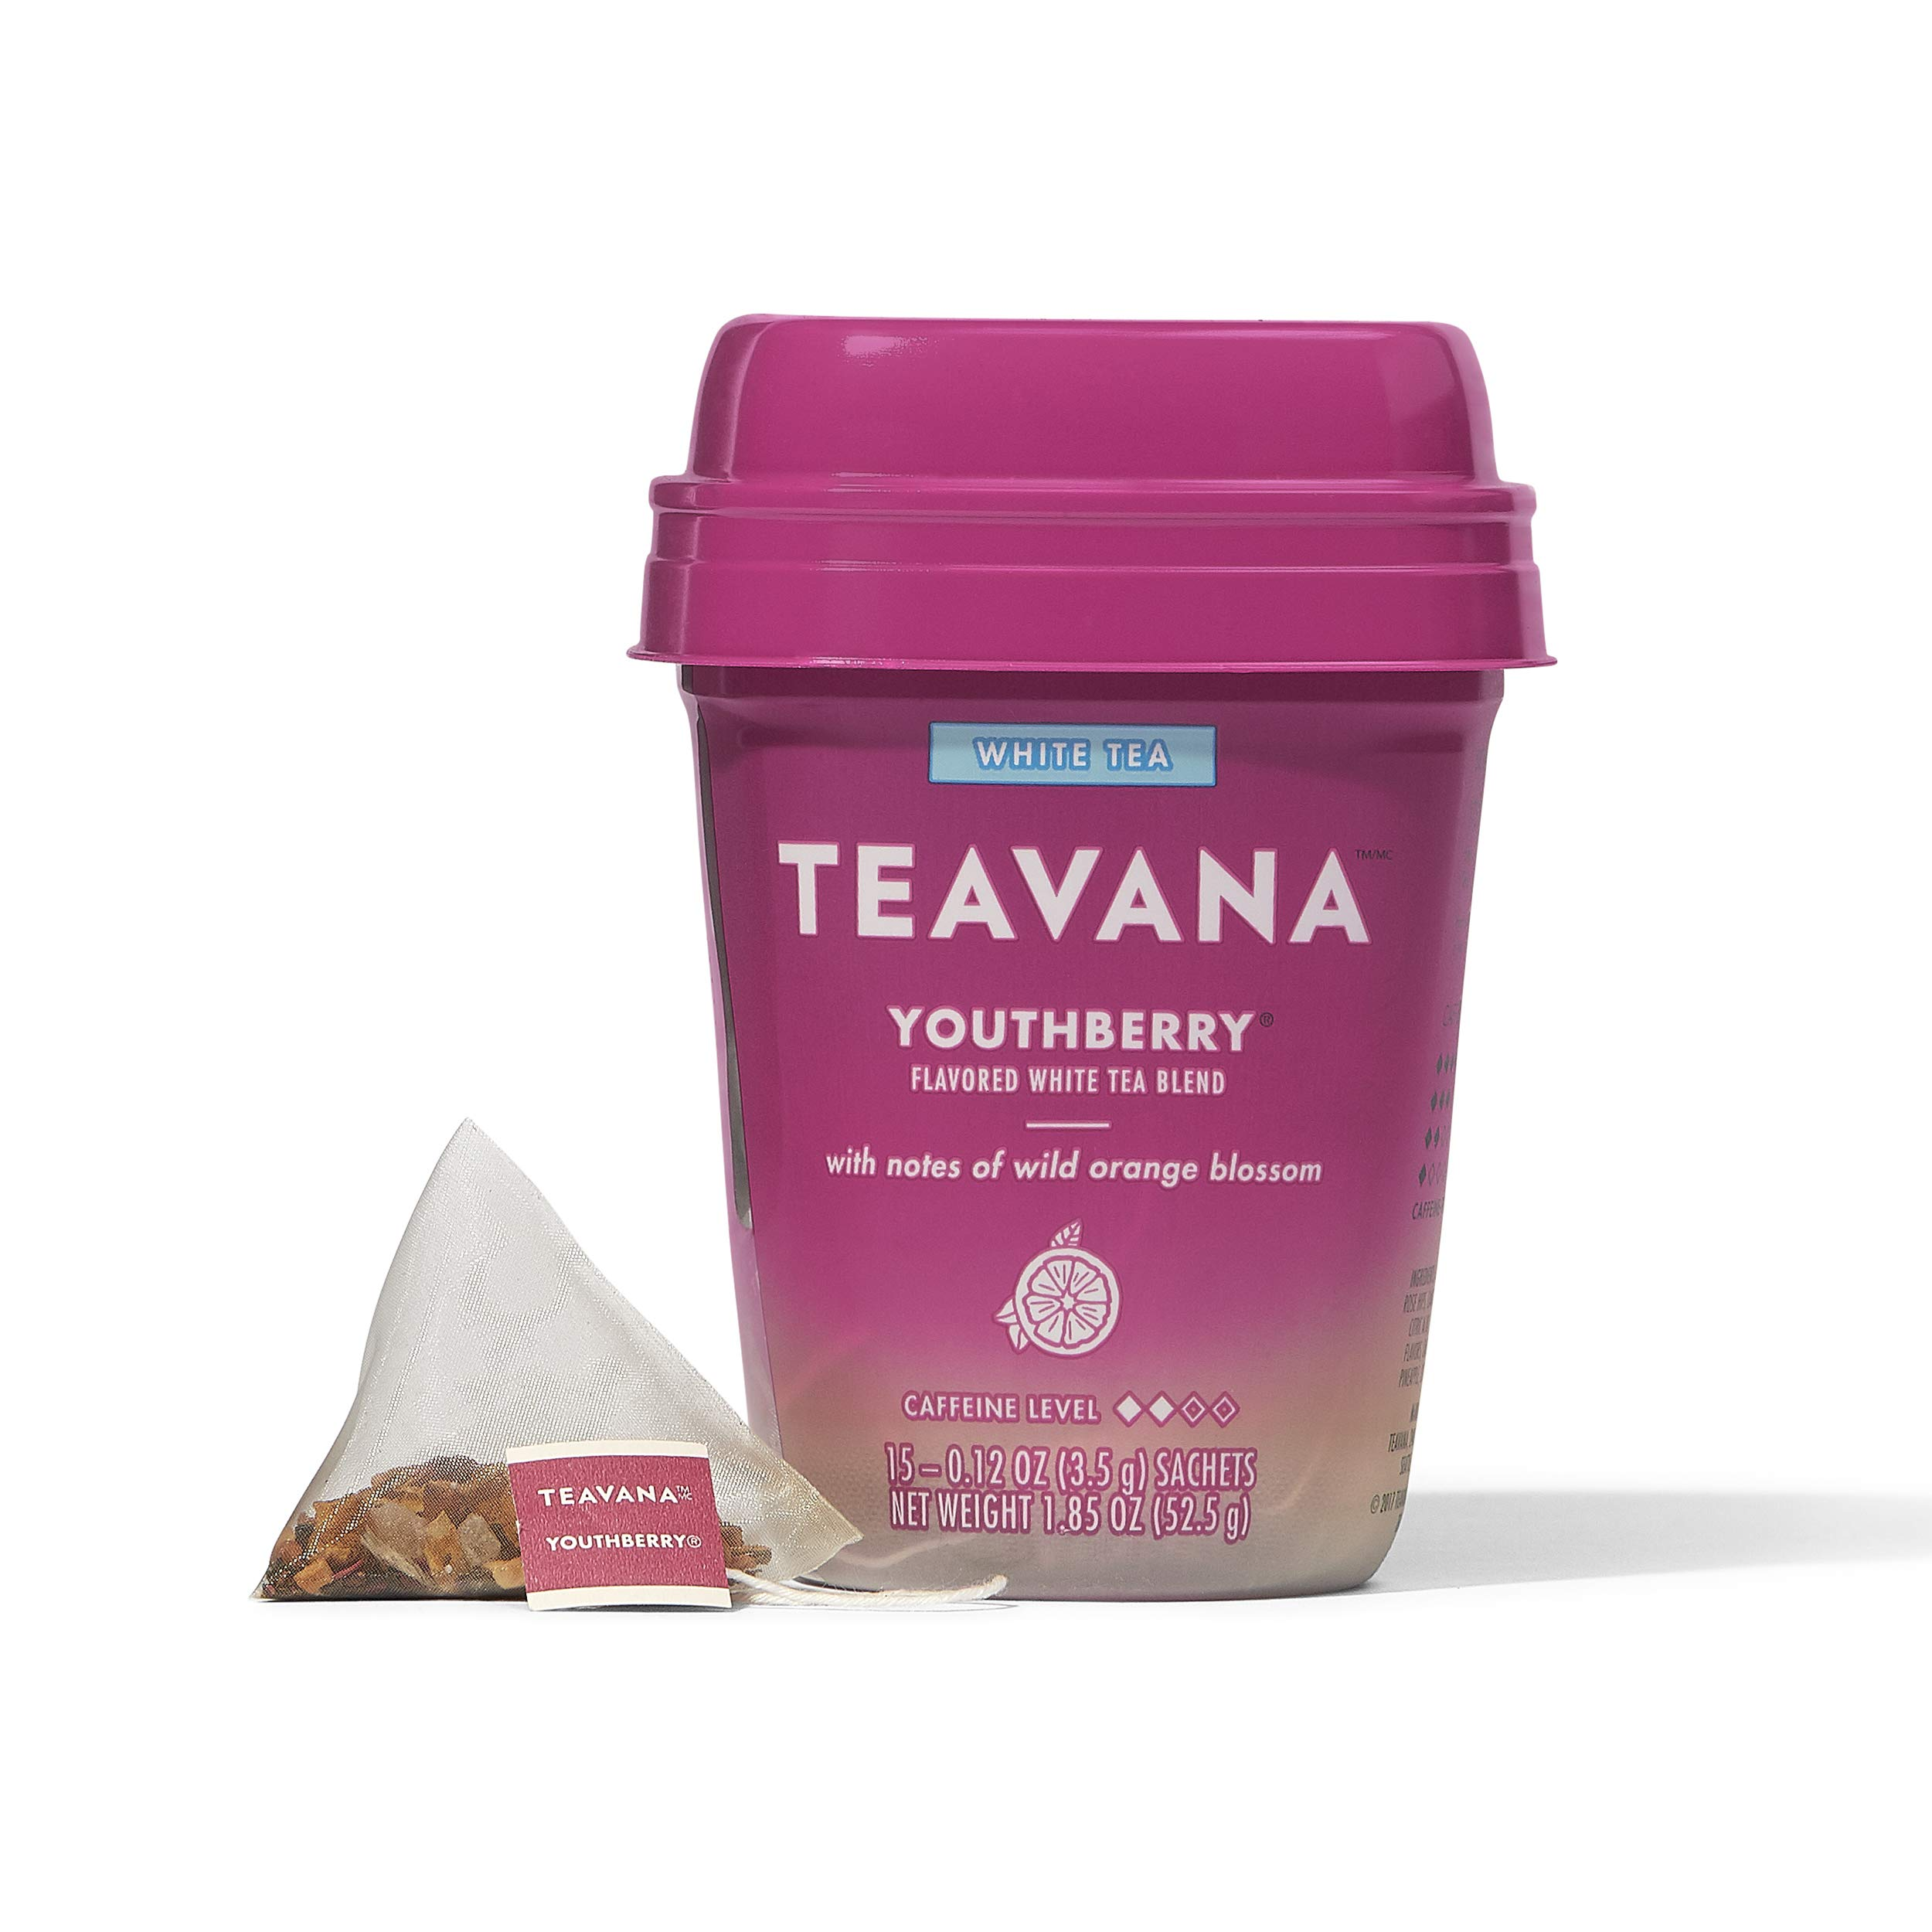 Teavana Youthberry, White Tea With Notes of Wild Orange Blossom, 60 Count (4 packs of 15 sachets)